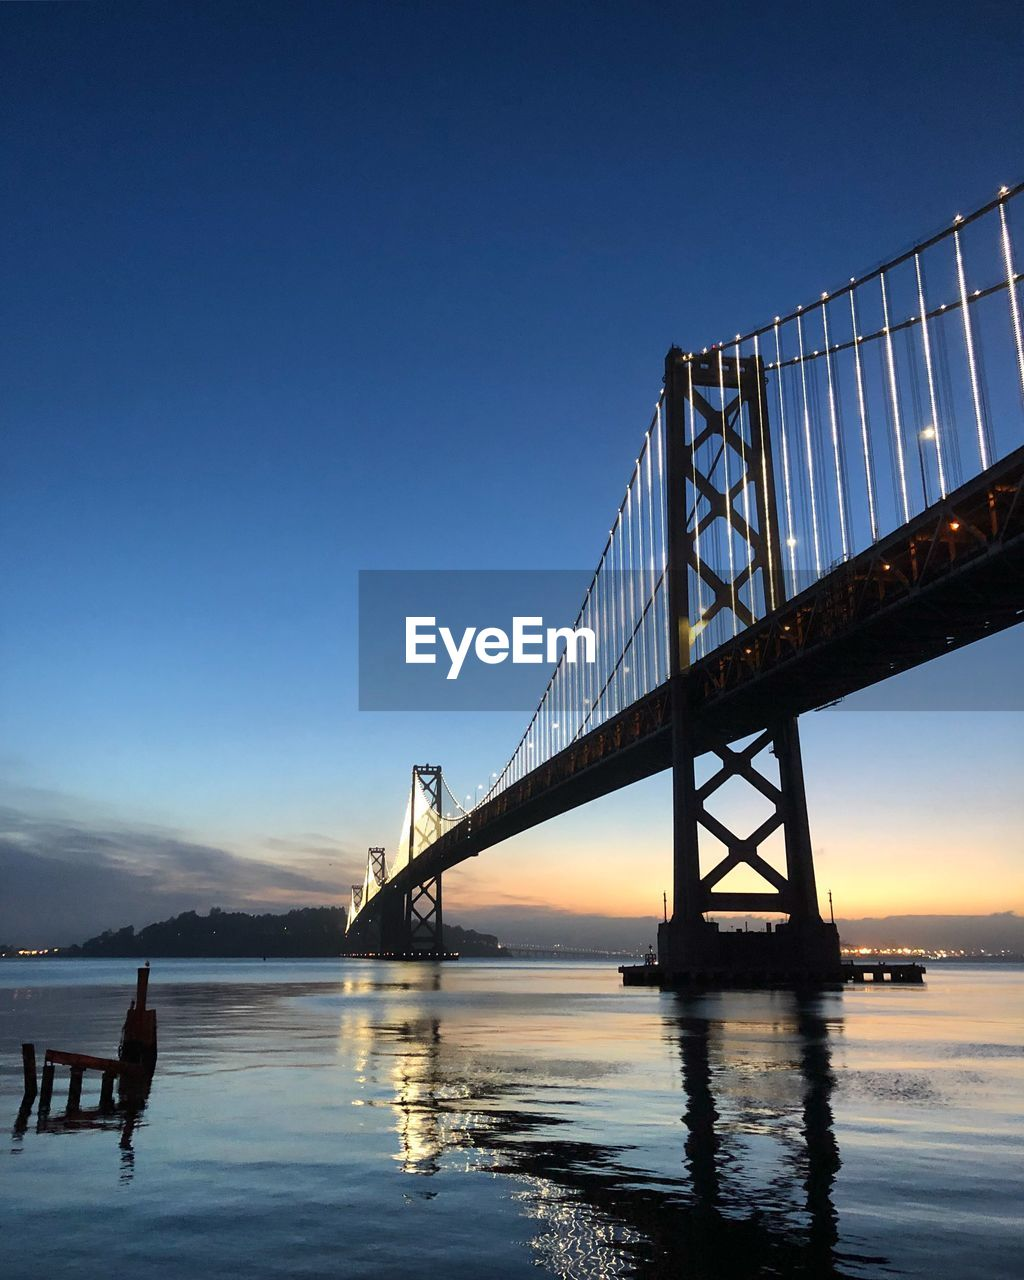 sky, bridge, bridge - man made structure, water, built structure, connection, architecture, transportation, nature, clear sky, suspension bridge, engineering, copy space, travel destinations, sunset, blue, tourism, reflection, waterfront, outdoors, bay